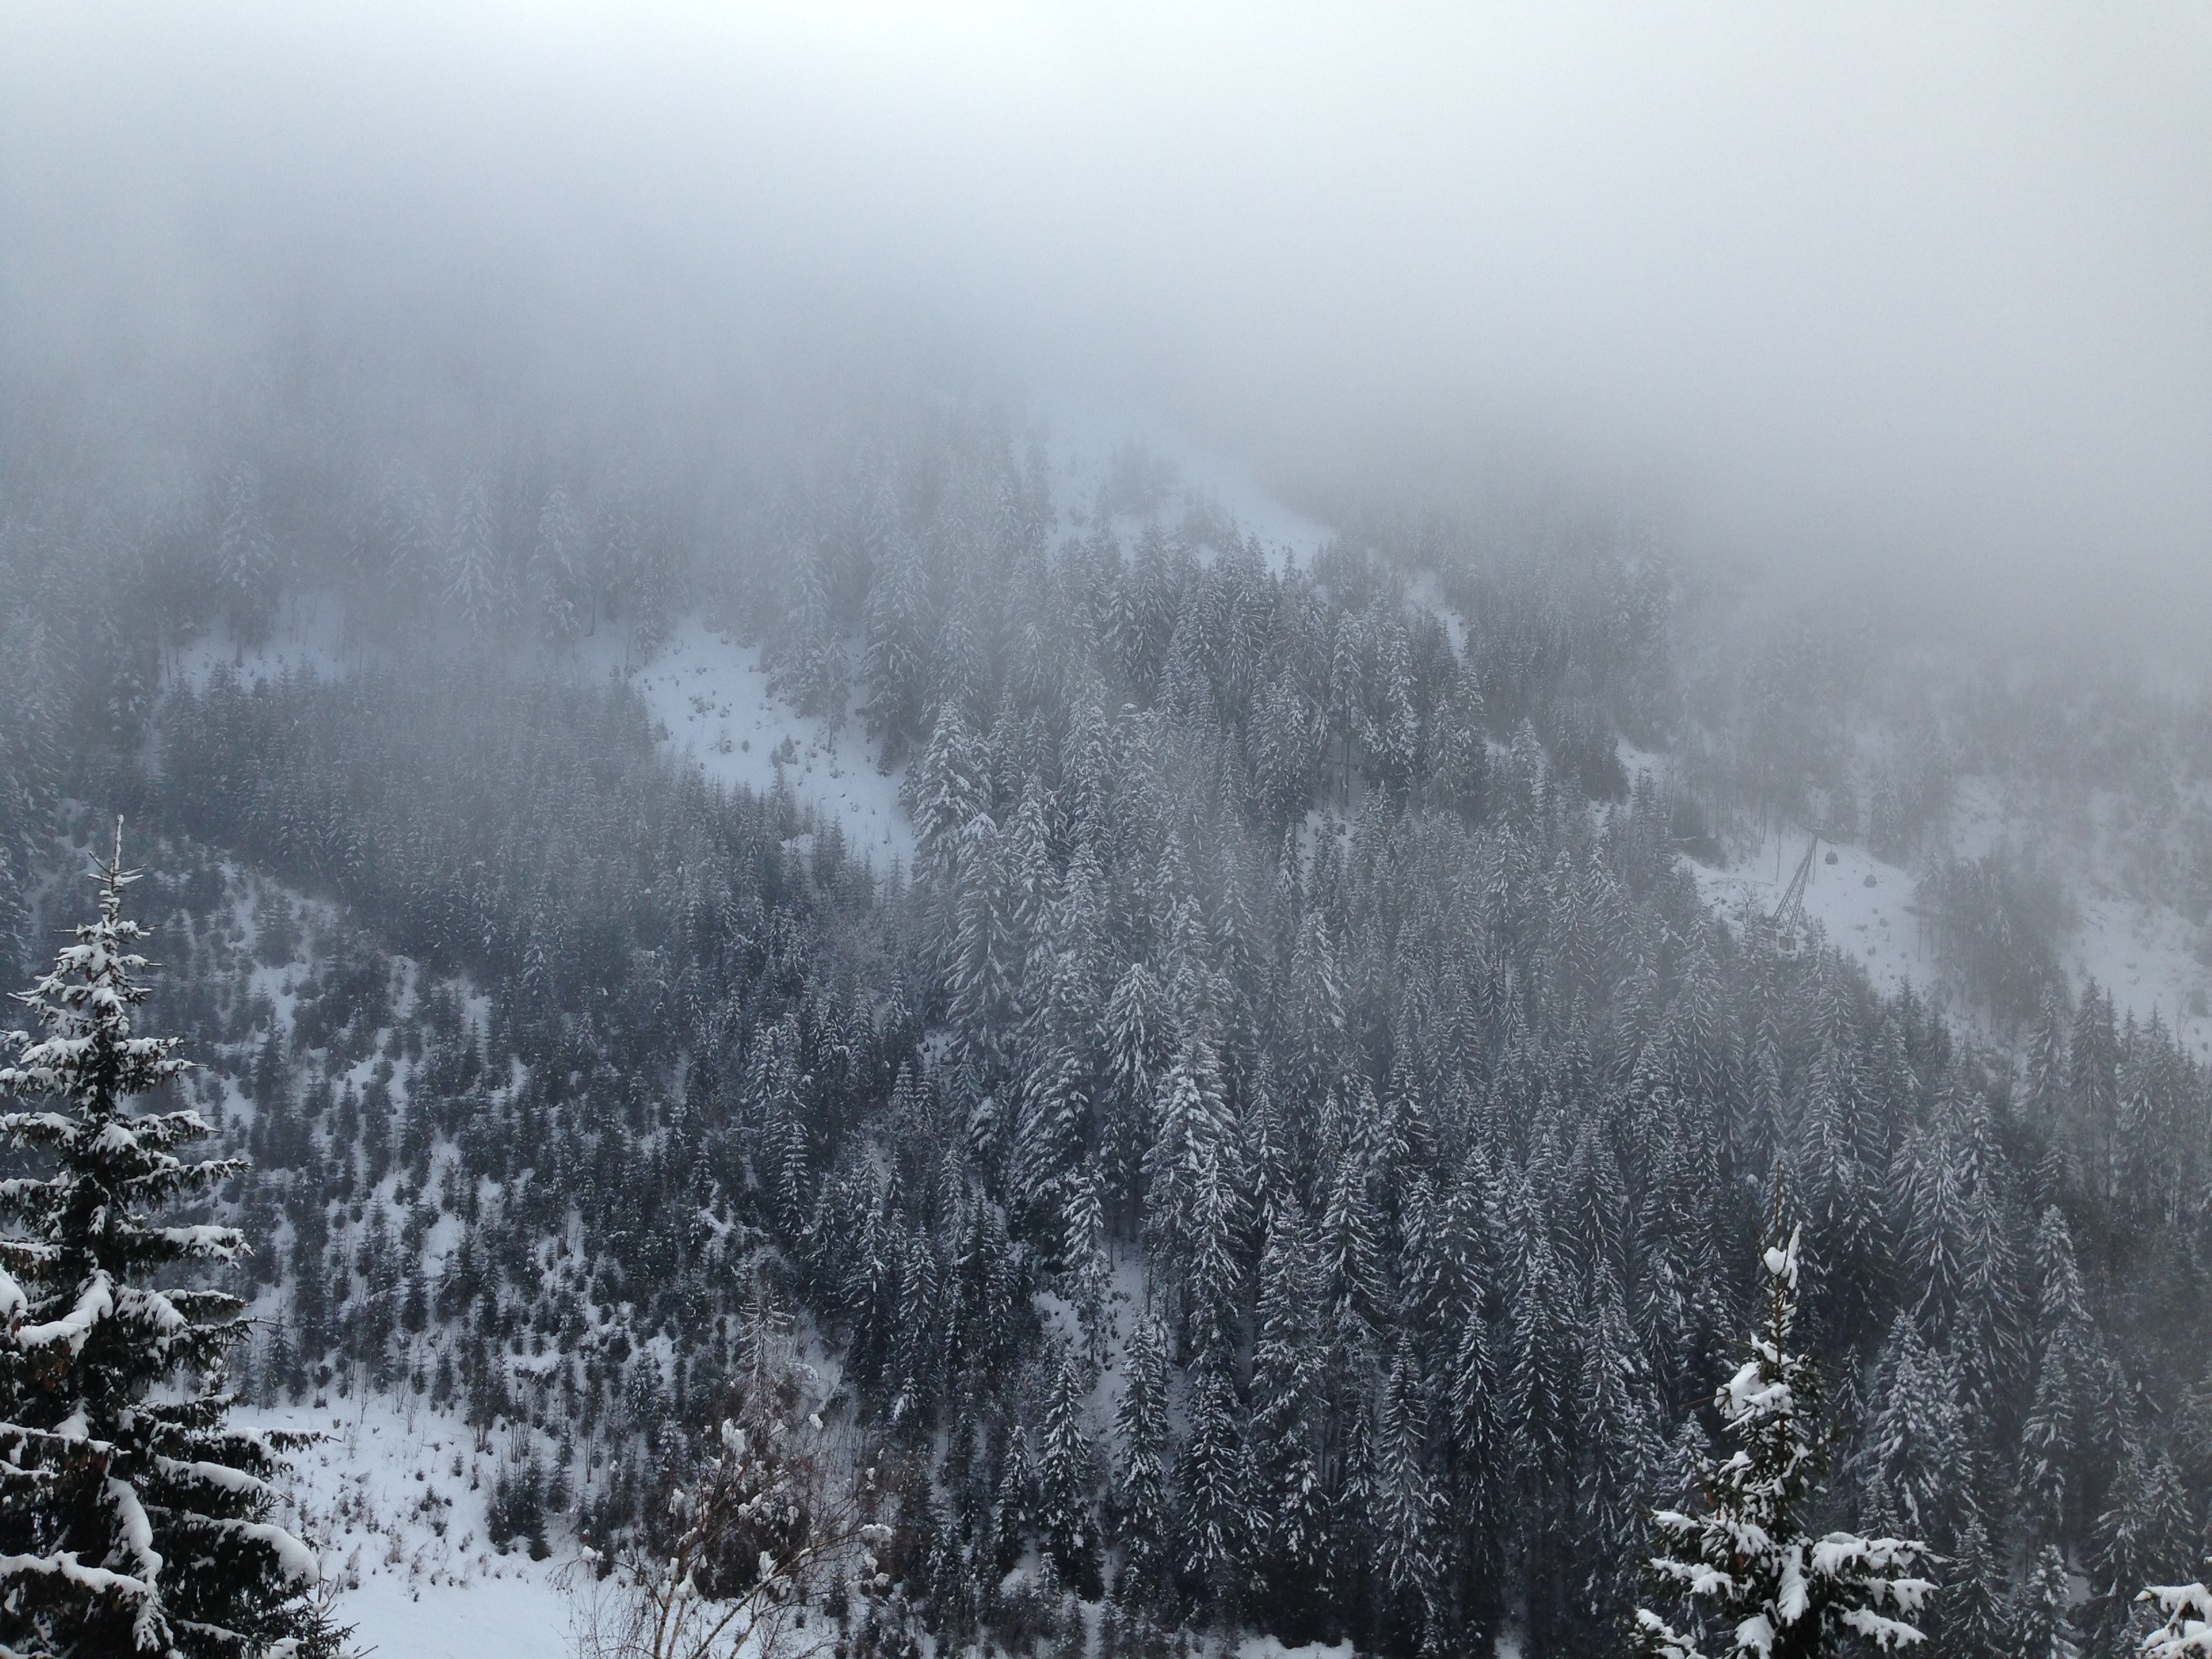 Fog covering an evergreen forest over a mountain slope